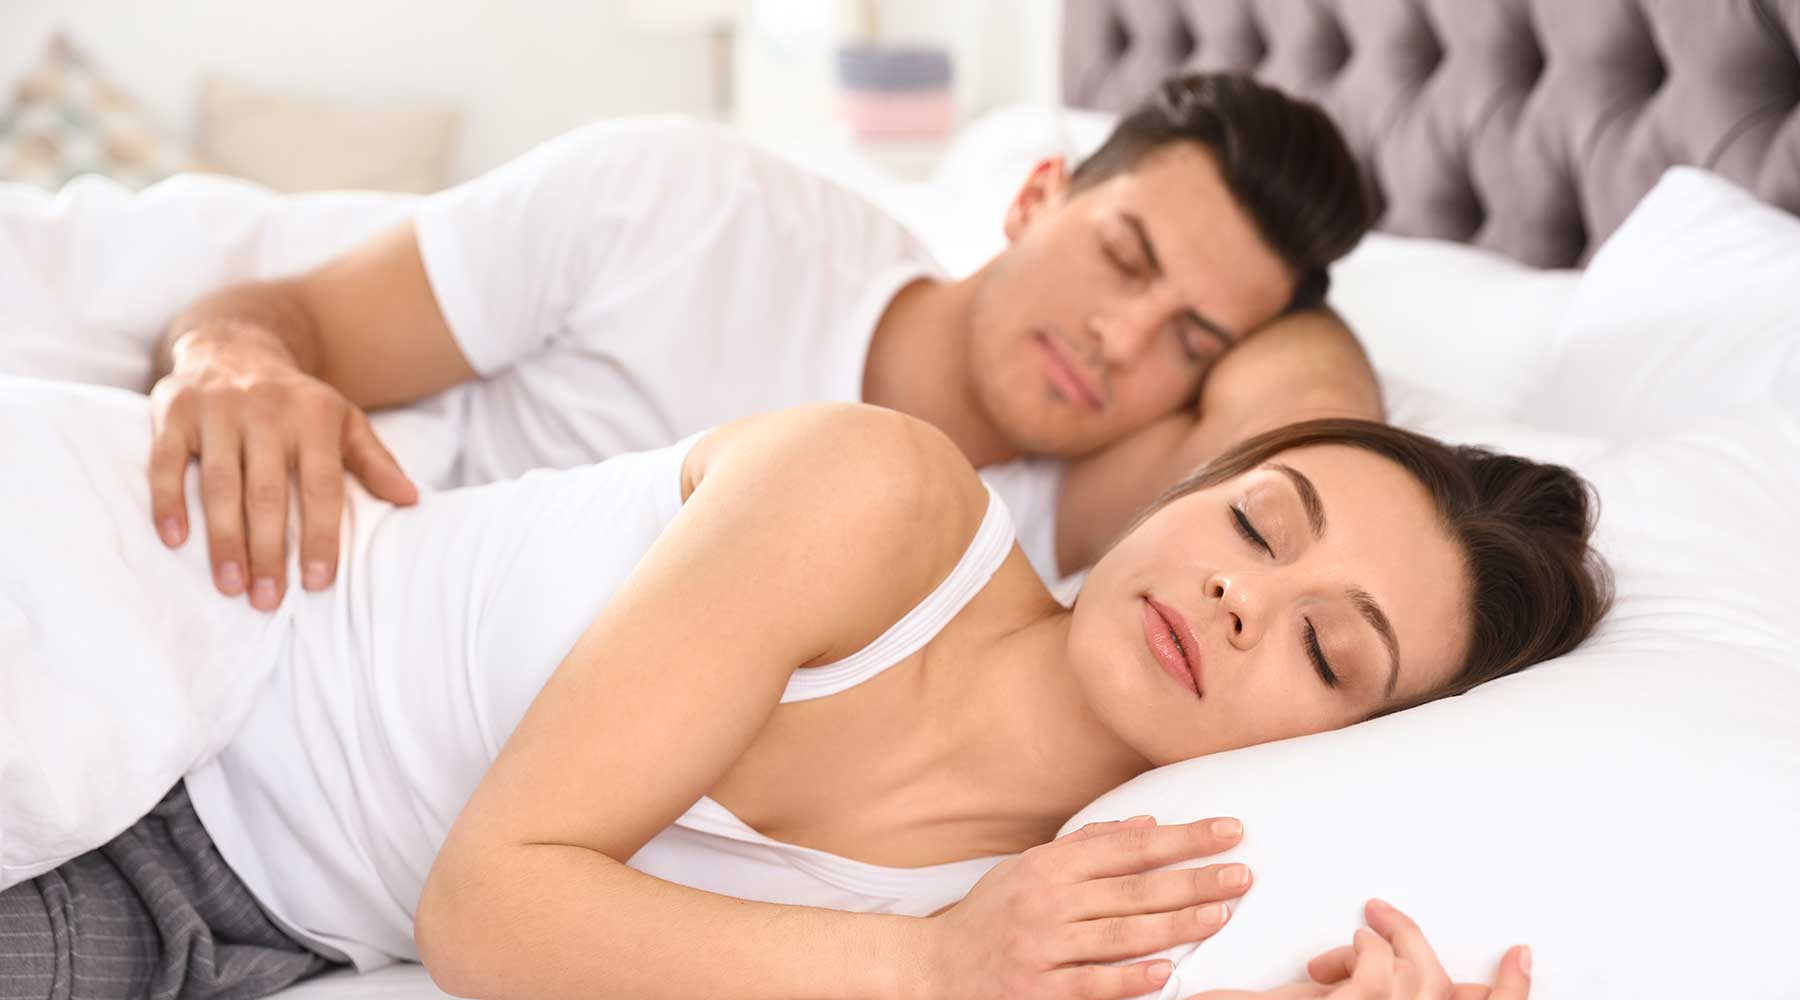 A man and woman sleeping in a bed